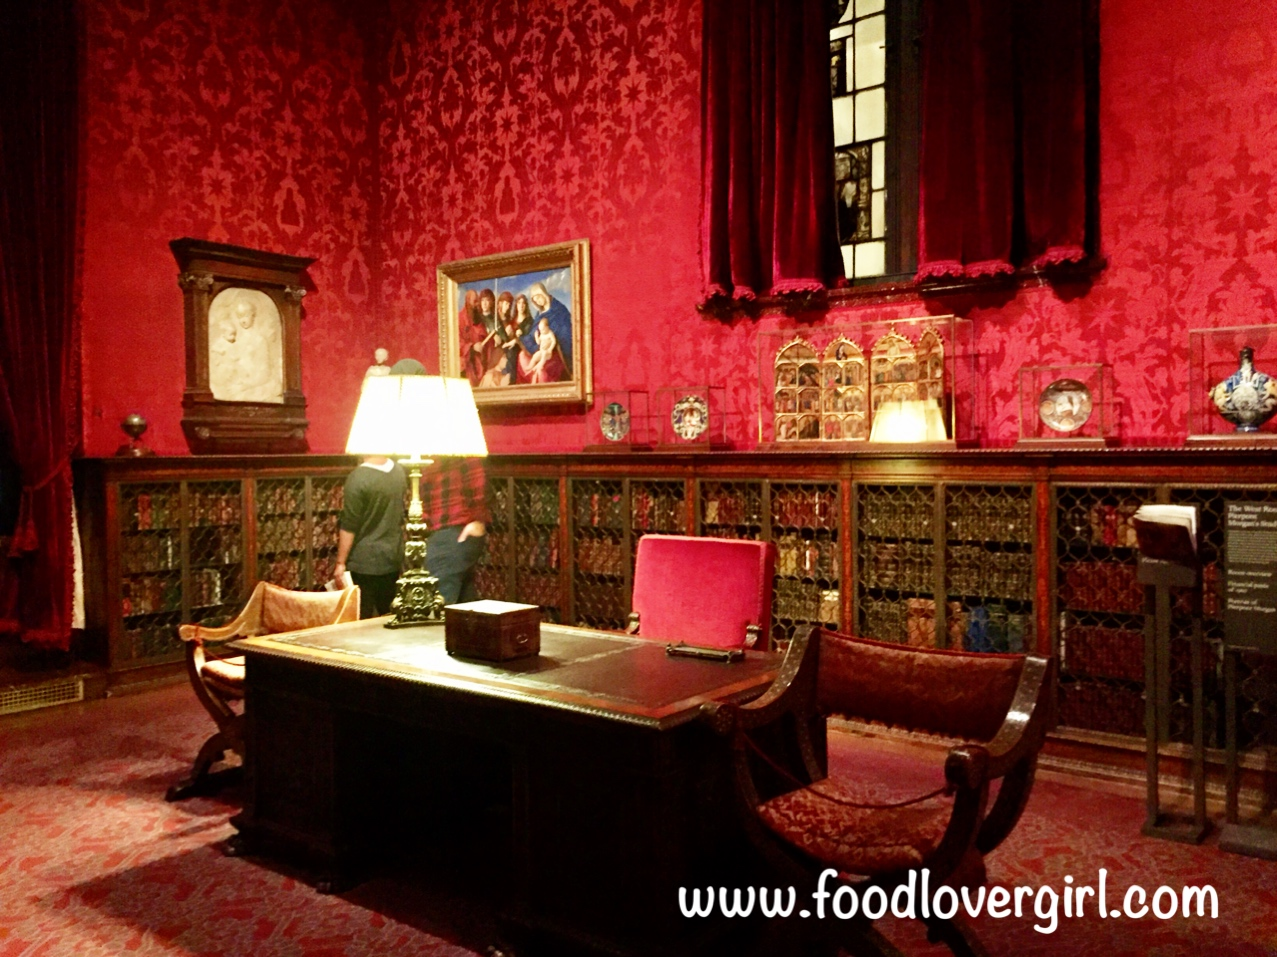 Each Library Room Was So Different, With Many Books From All Over The  World, Century And Topics. They Had More Than Just Books And Manuscripts,  ...